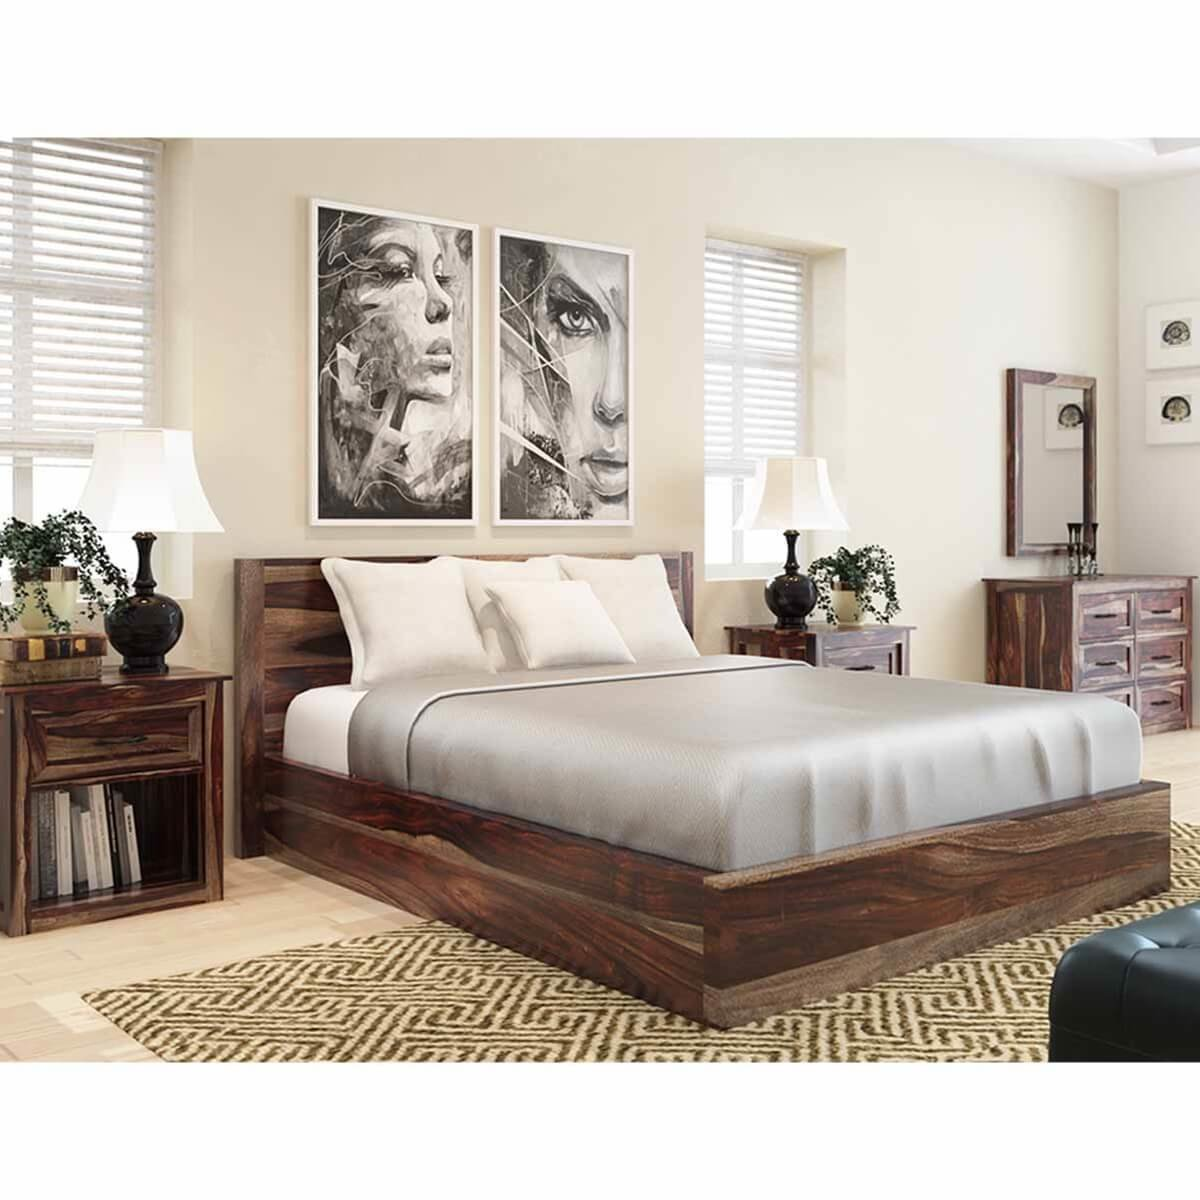 Best Jamaica Rustic Solid Wood 5 Piece King Size Bedroom With Pictures